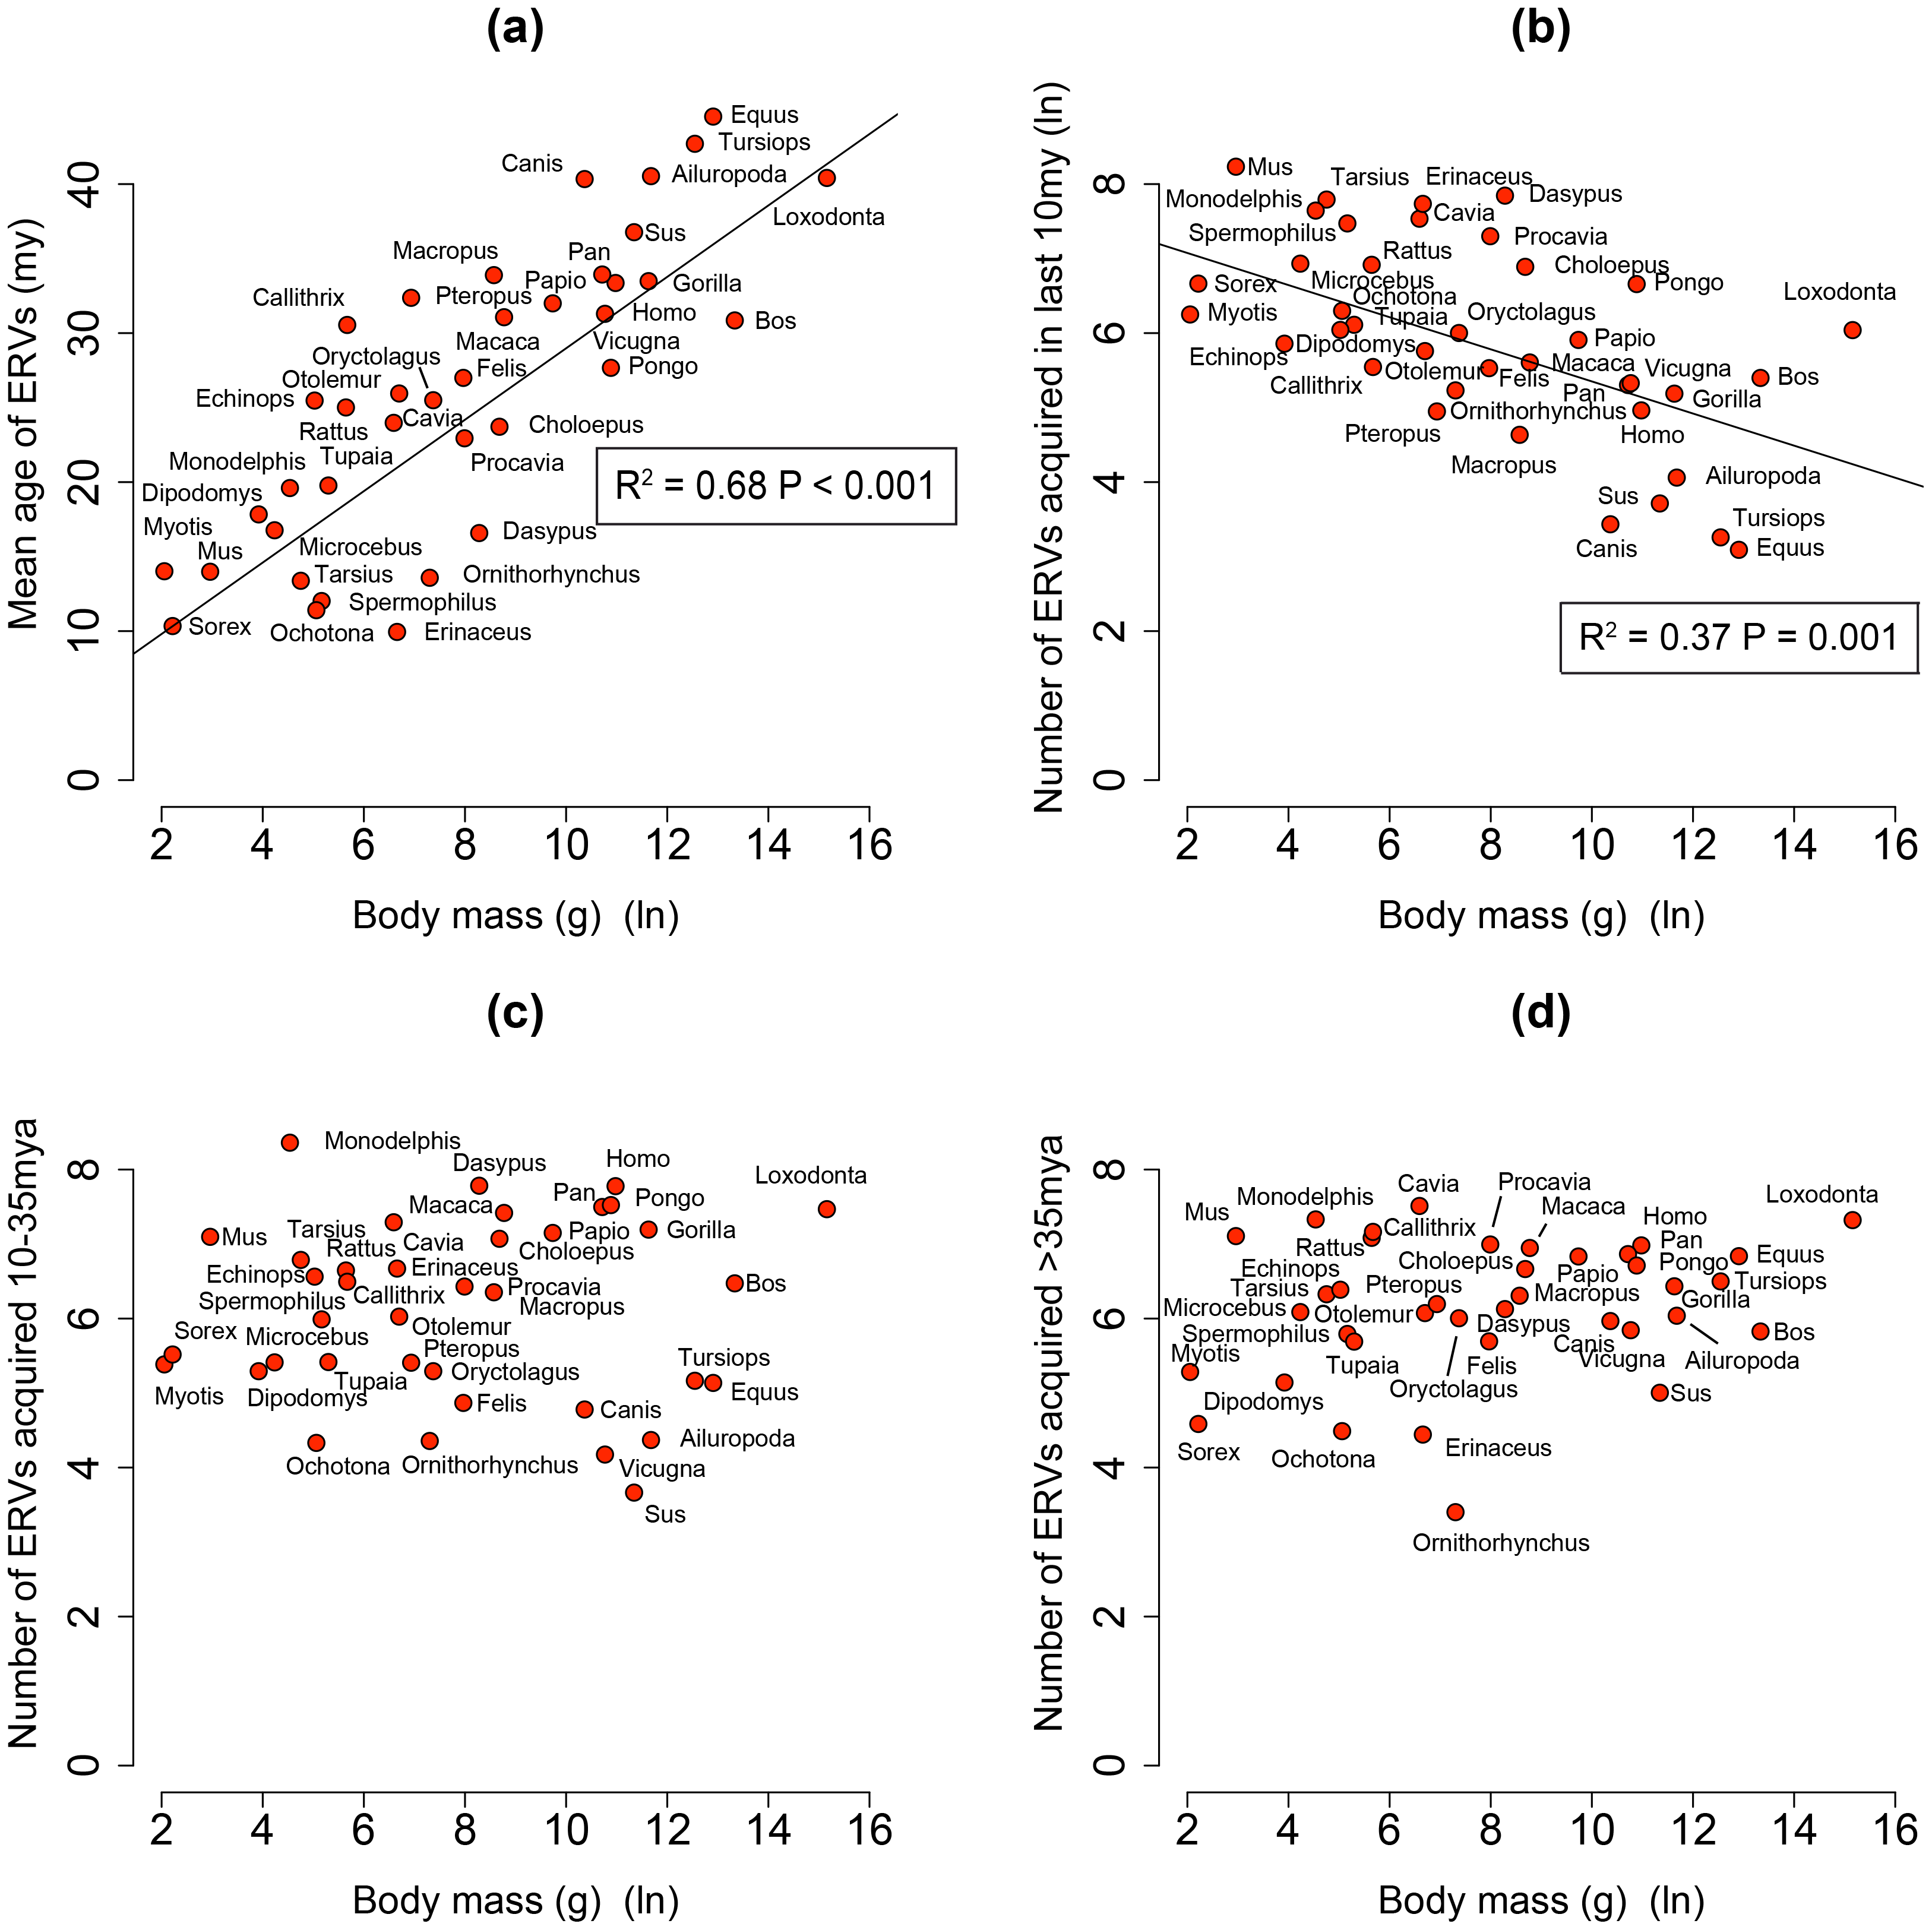 (a) Correlation between mean age of all ERV integrations and body mass from the genomes of 38 mammals.